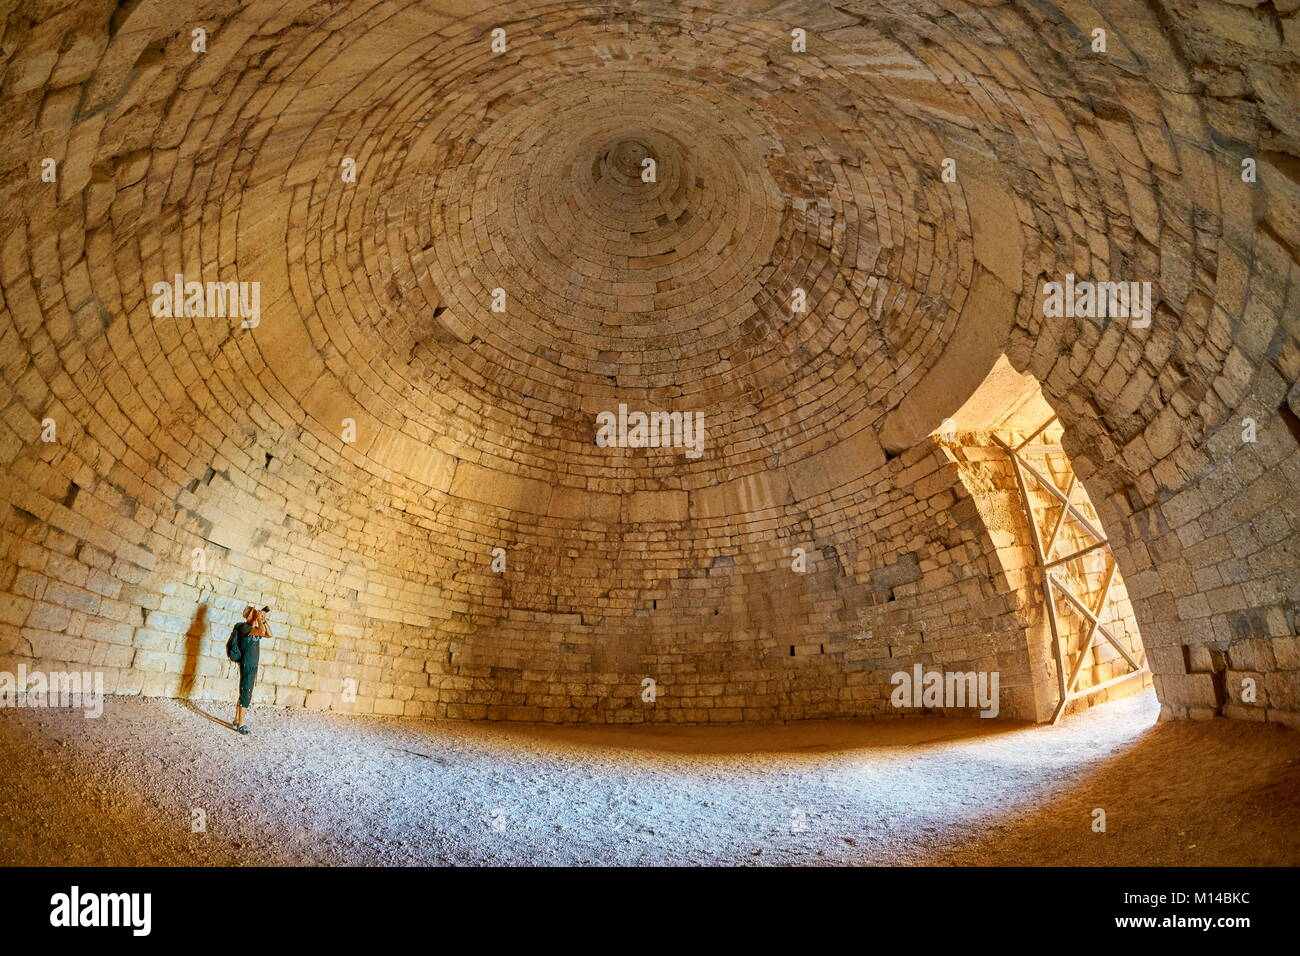 The Tomb of Agamemnon, the Treasury of Atreus, Mycenae, Greece - Stock Image